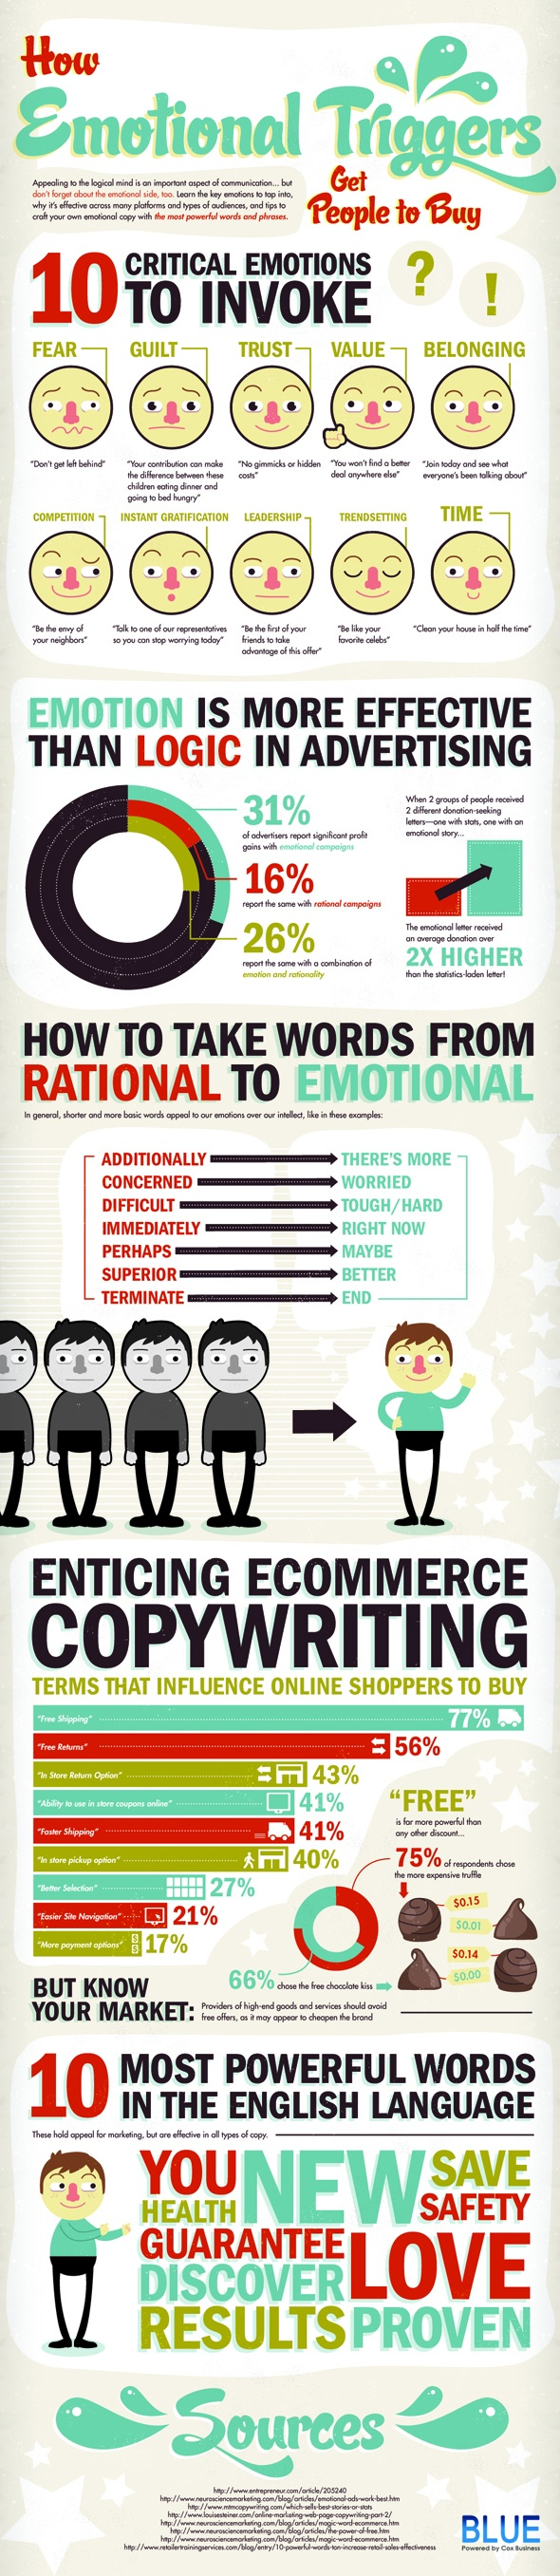 10-critical-emotional-triggers-your-website-copy-must-invoke-to-get-people-to-buy-from-you1-1.jpg